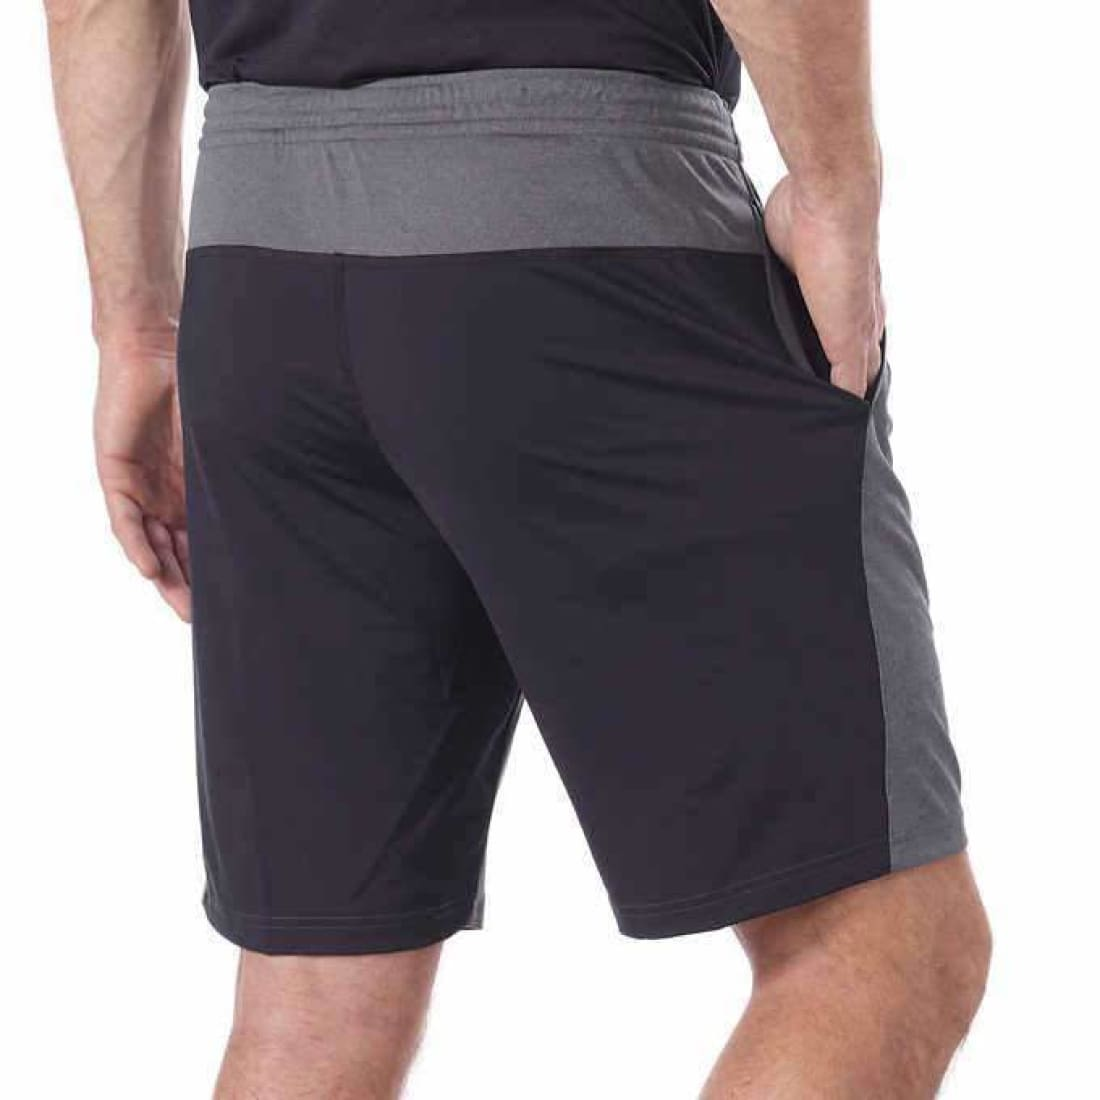 Reebok Mens Active Poly Knit Short Shorts